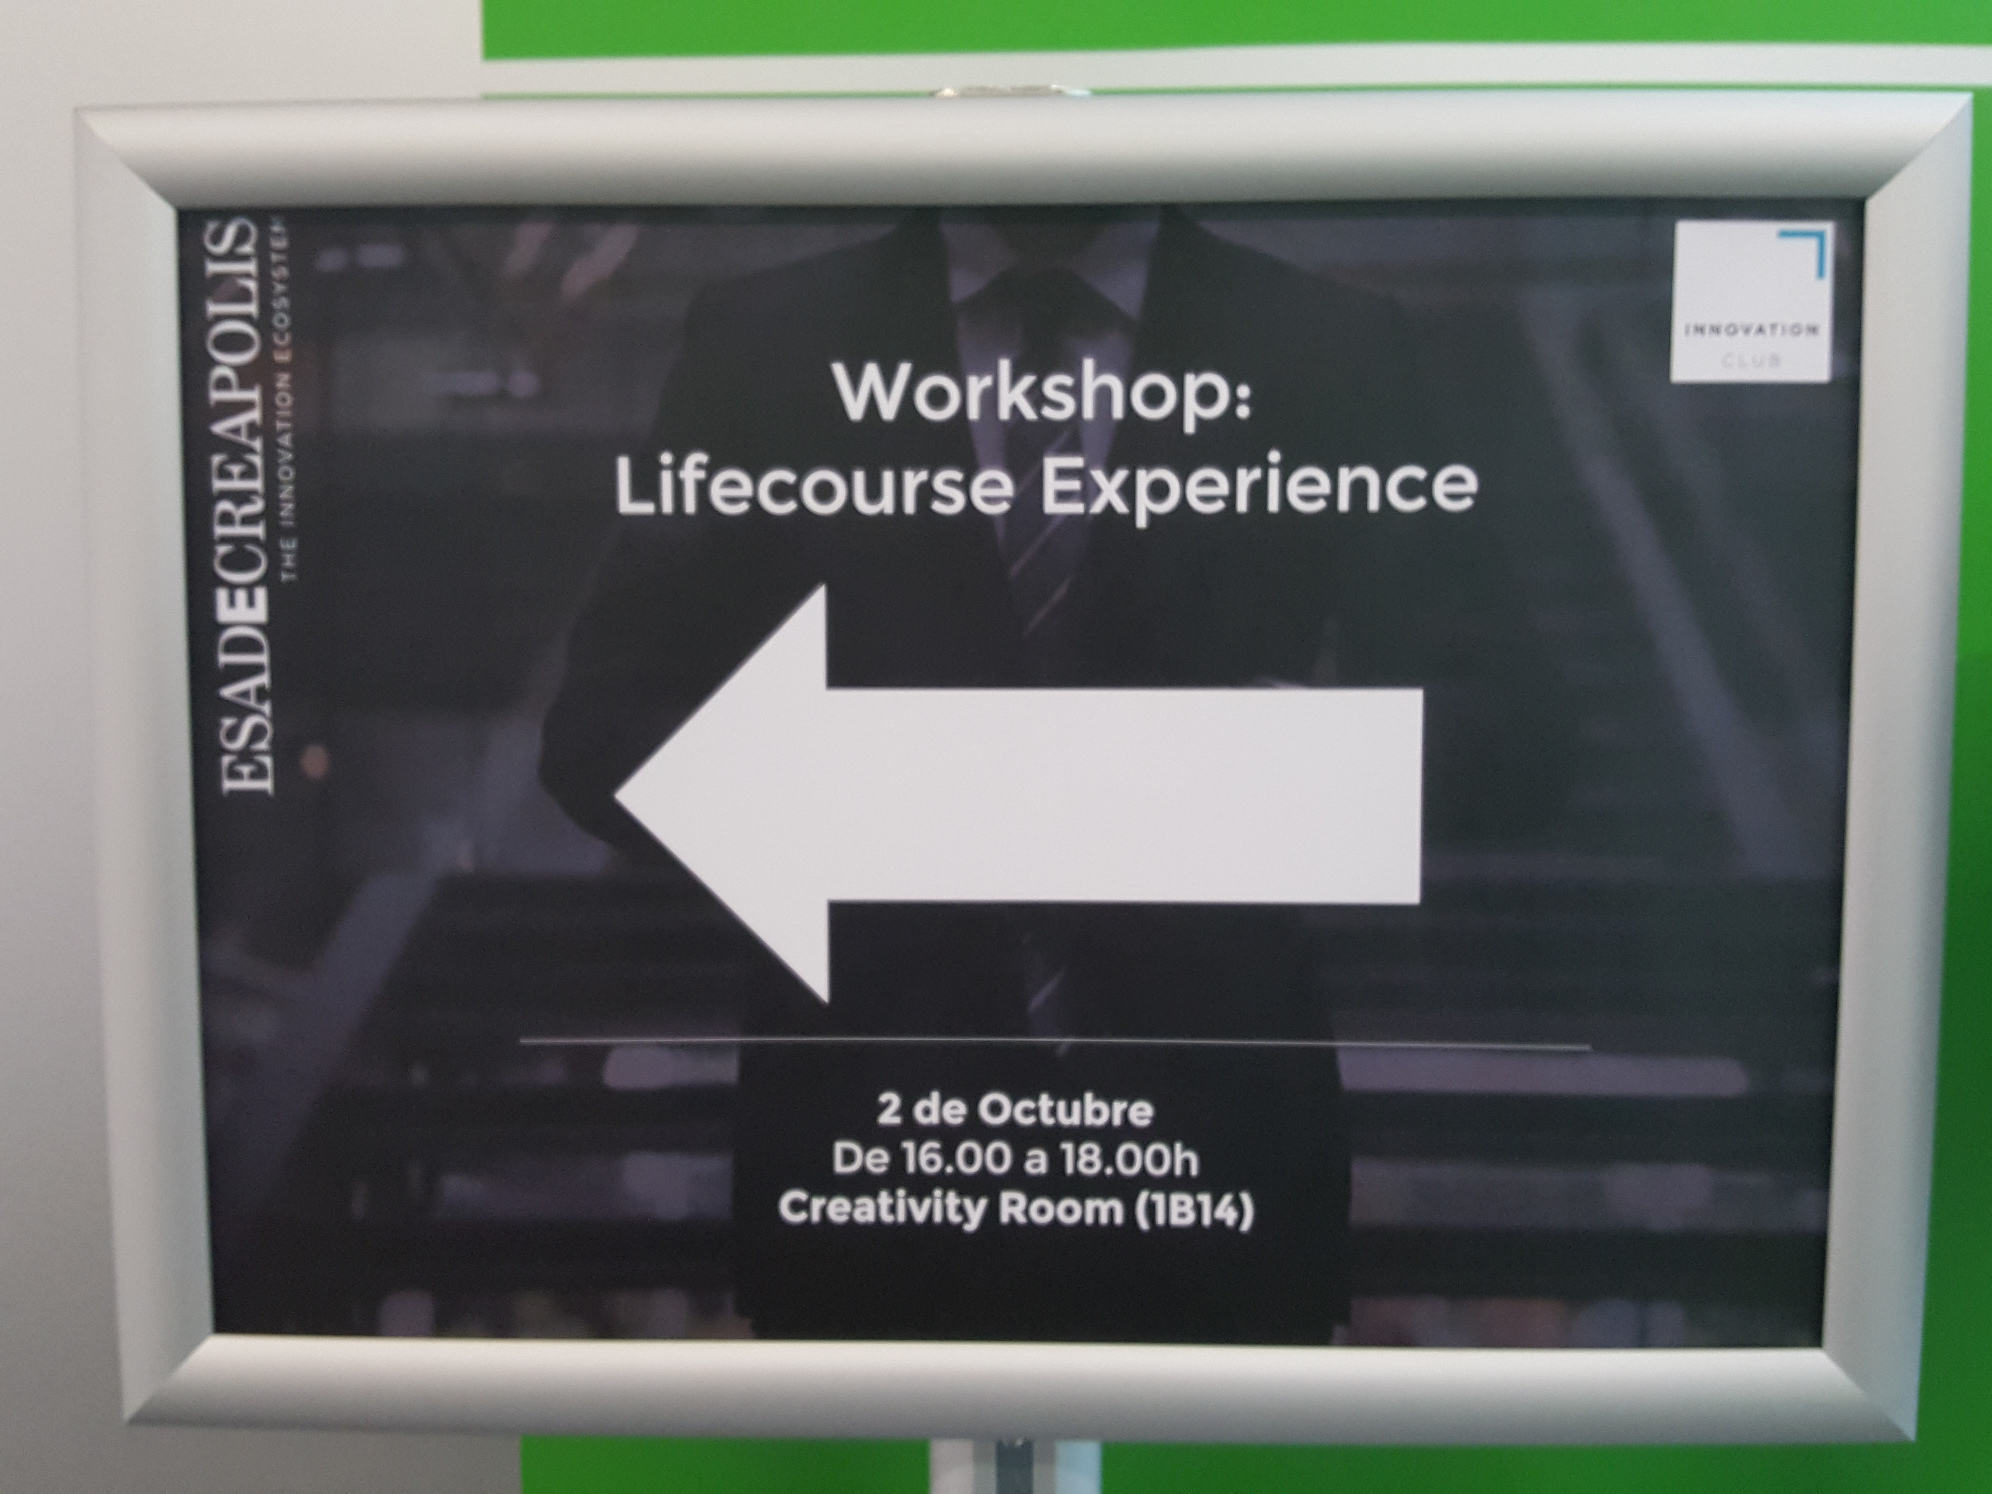 Cartel de anuncio del workshop Lifecourse Experience en ESADECREAPOLIS